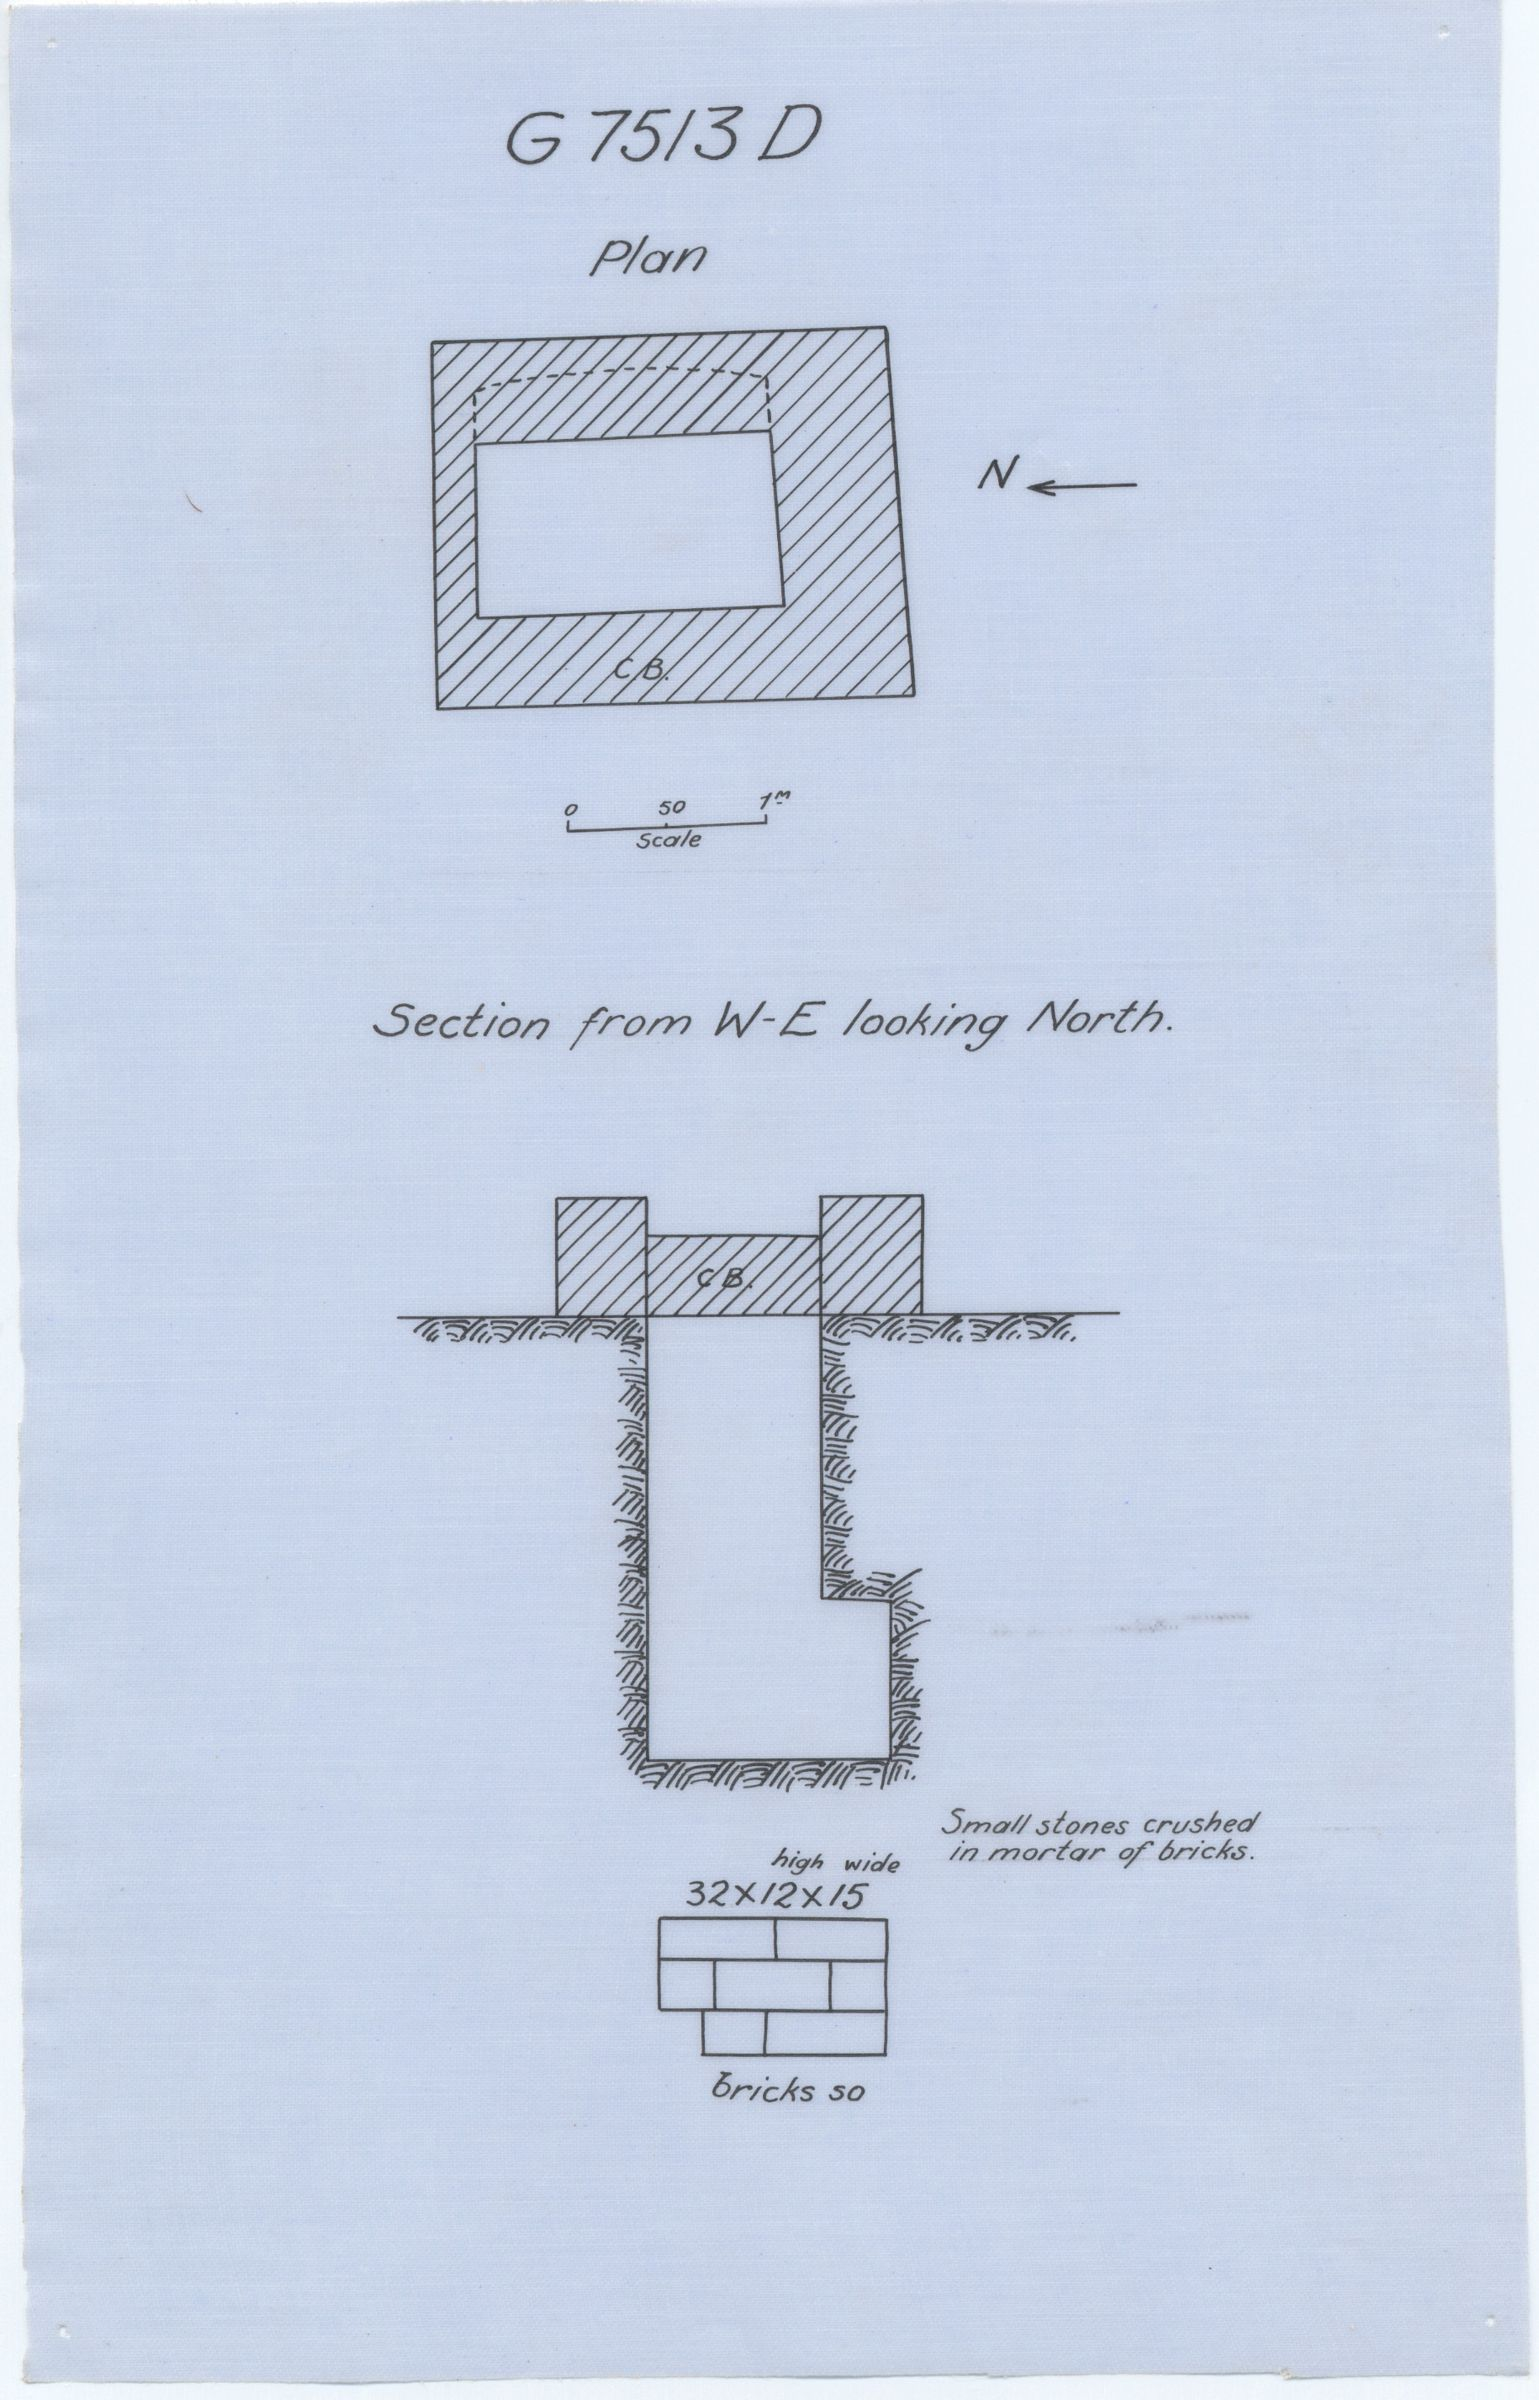 Maps and plans: G 7513, Shaft D